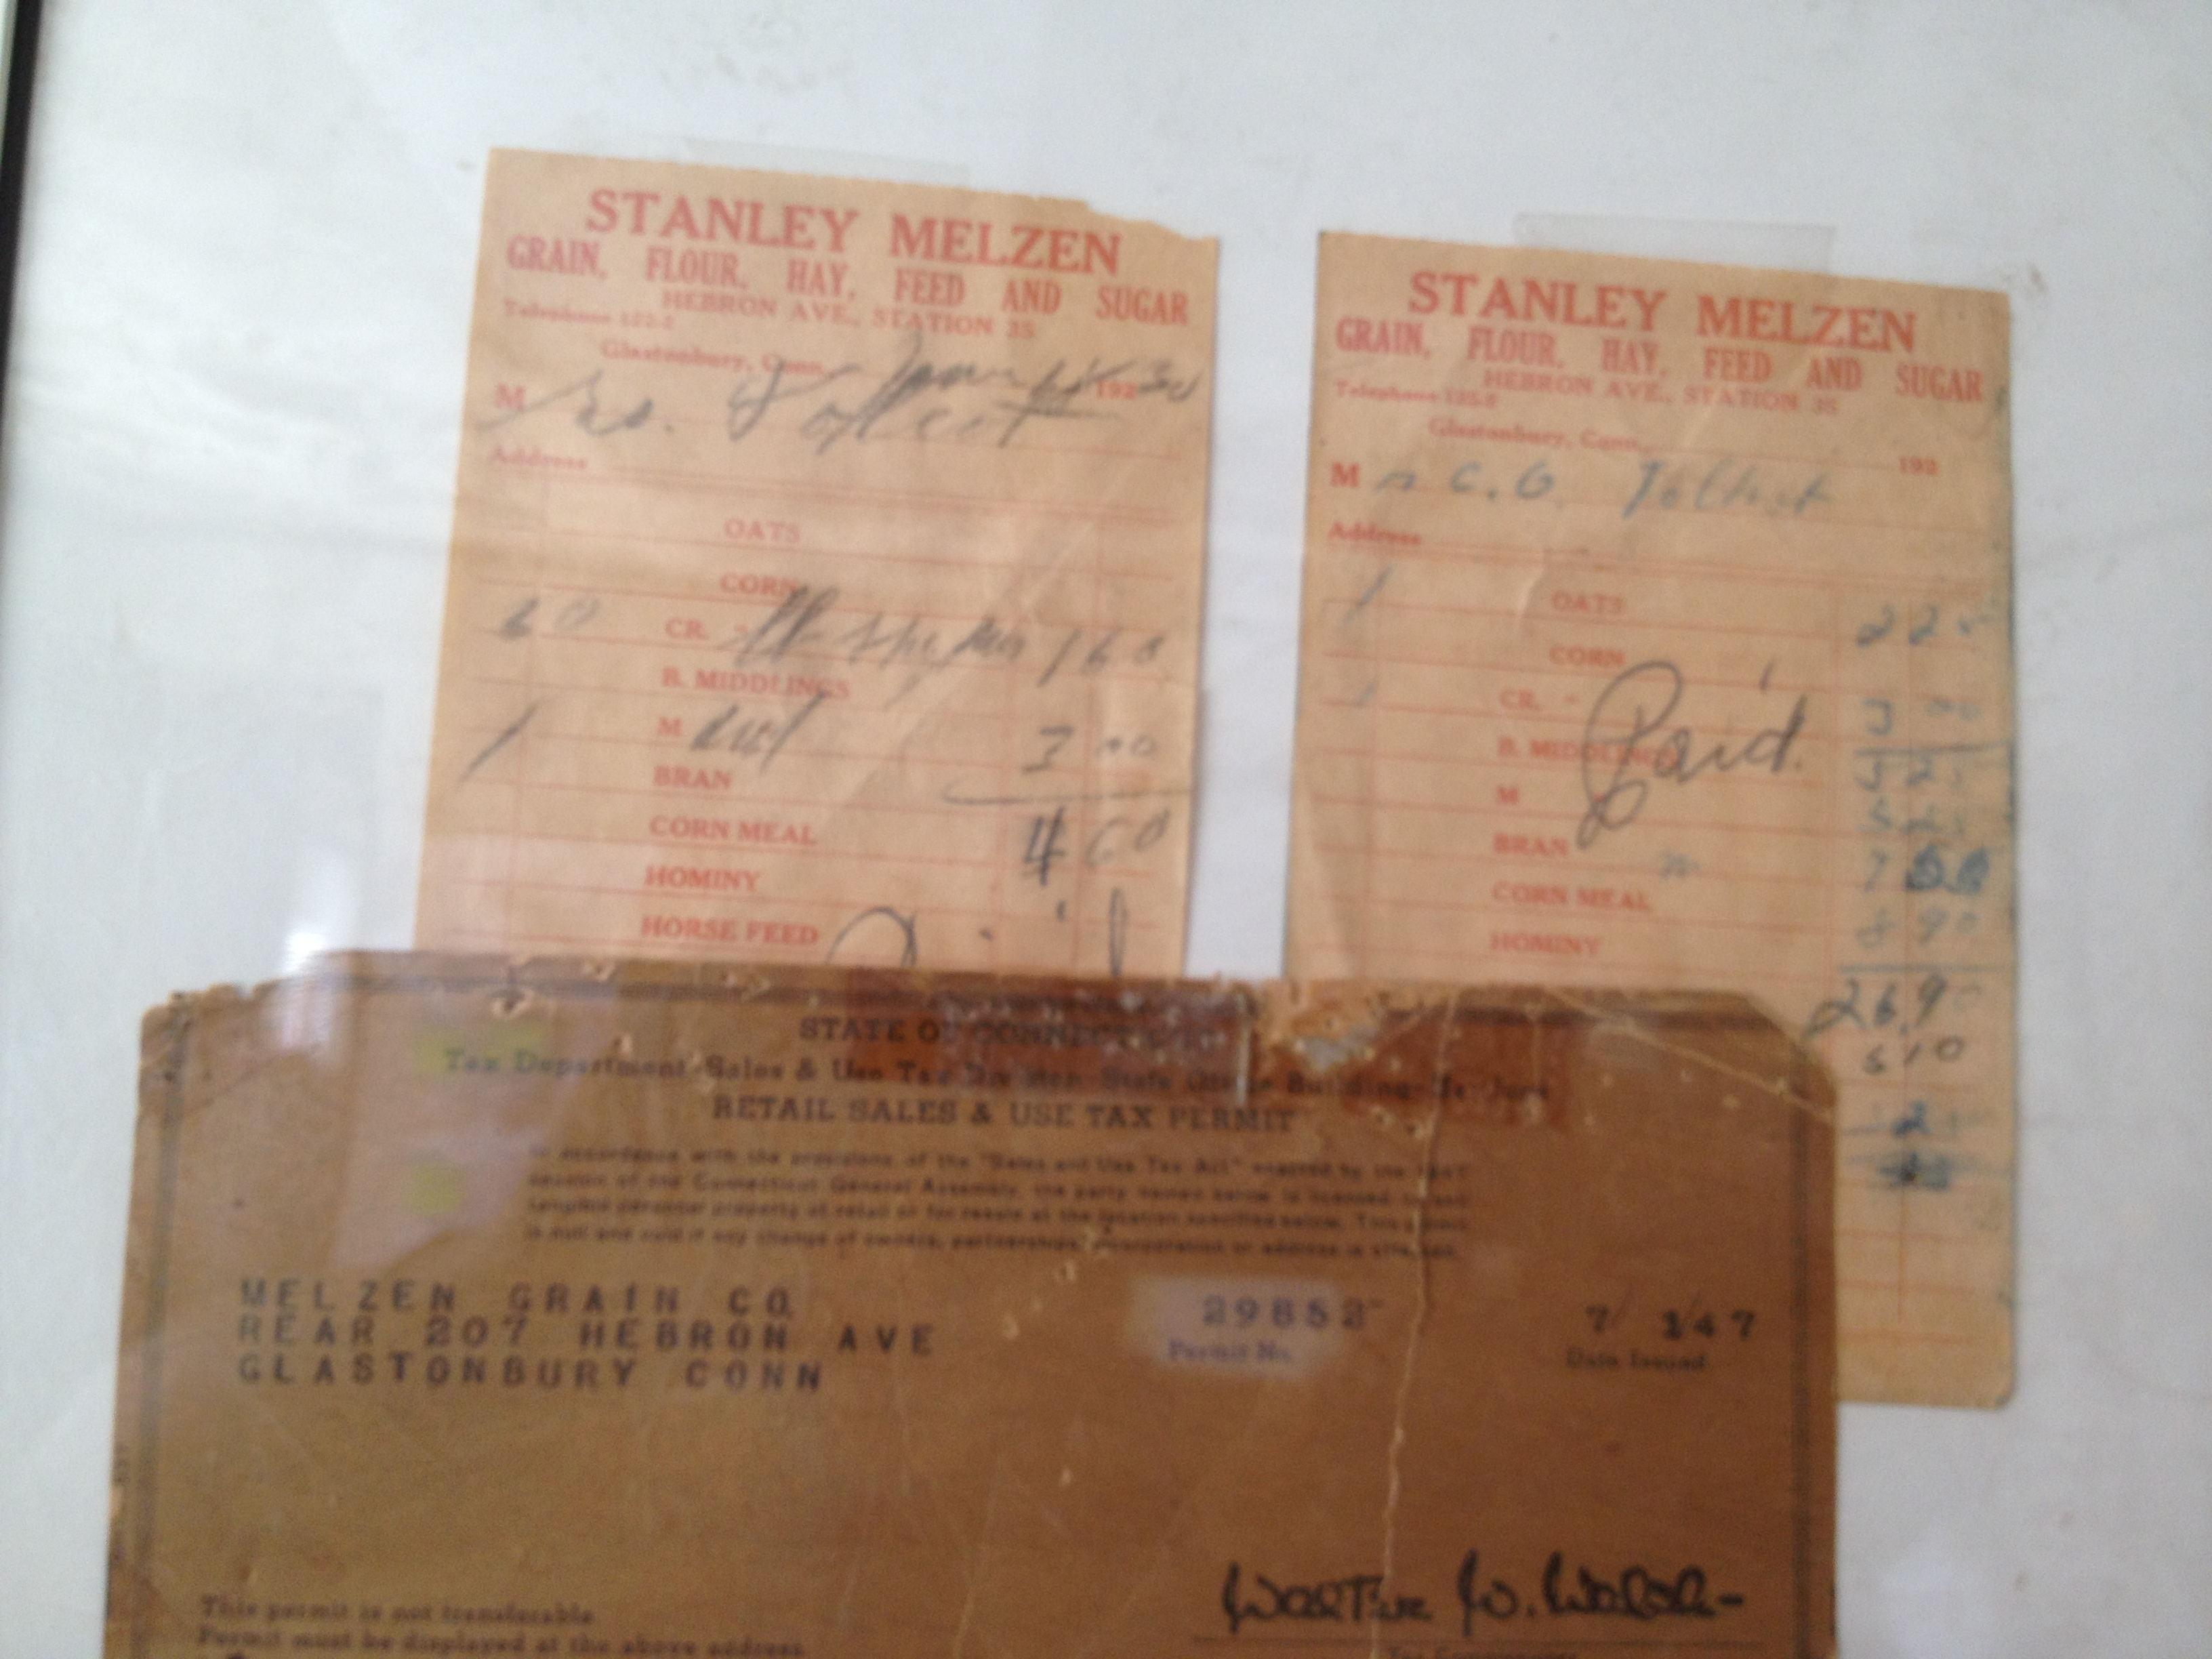 A few original invoices